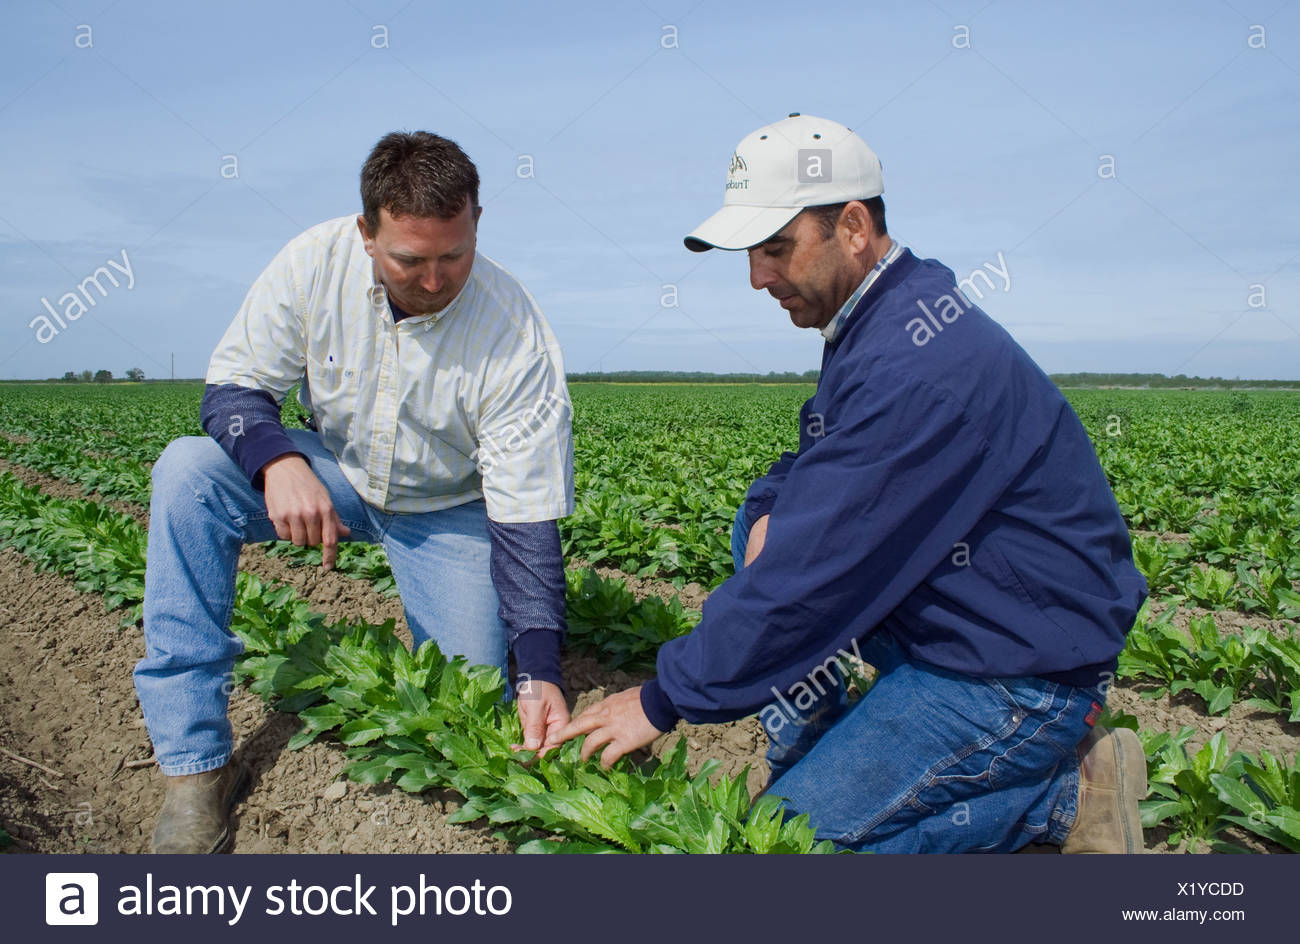 Agriculture - A grower and commodity broker in the field inspecting a crop of early growth safflower / McArthur, California, USA - Stock Image